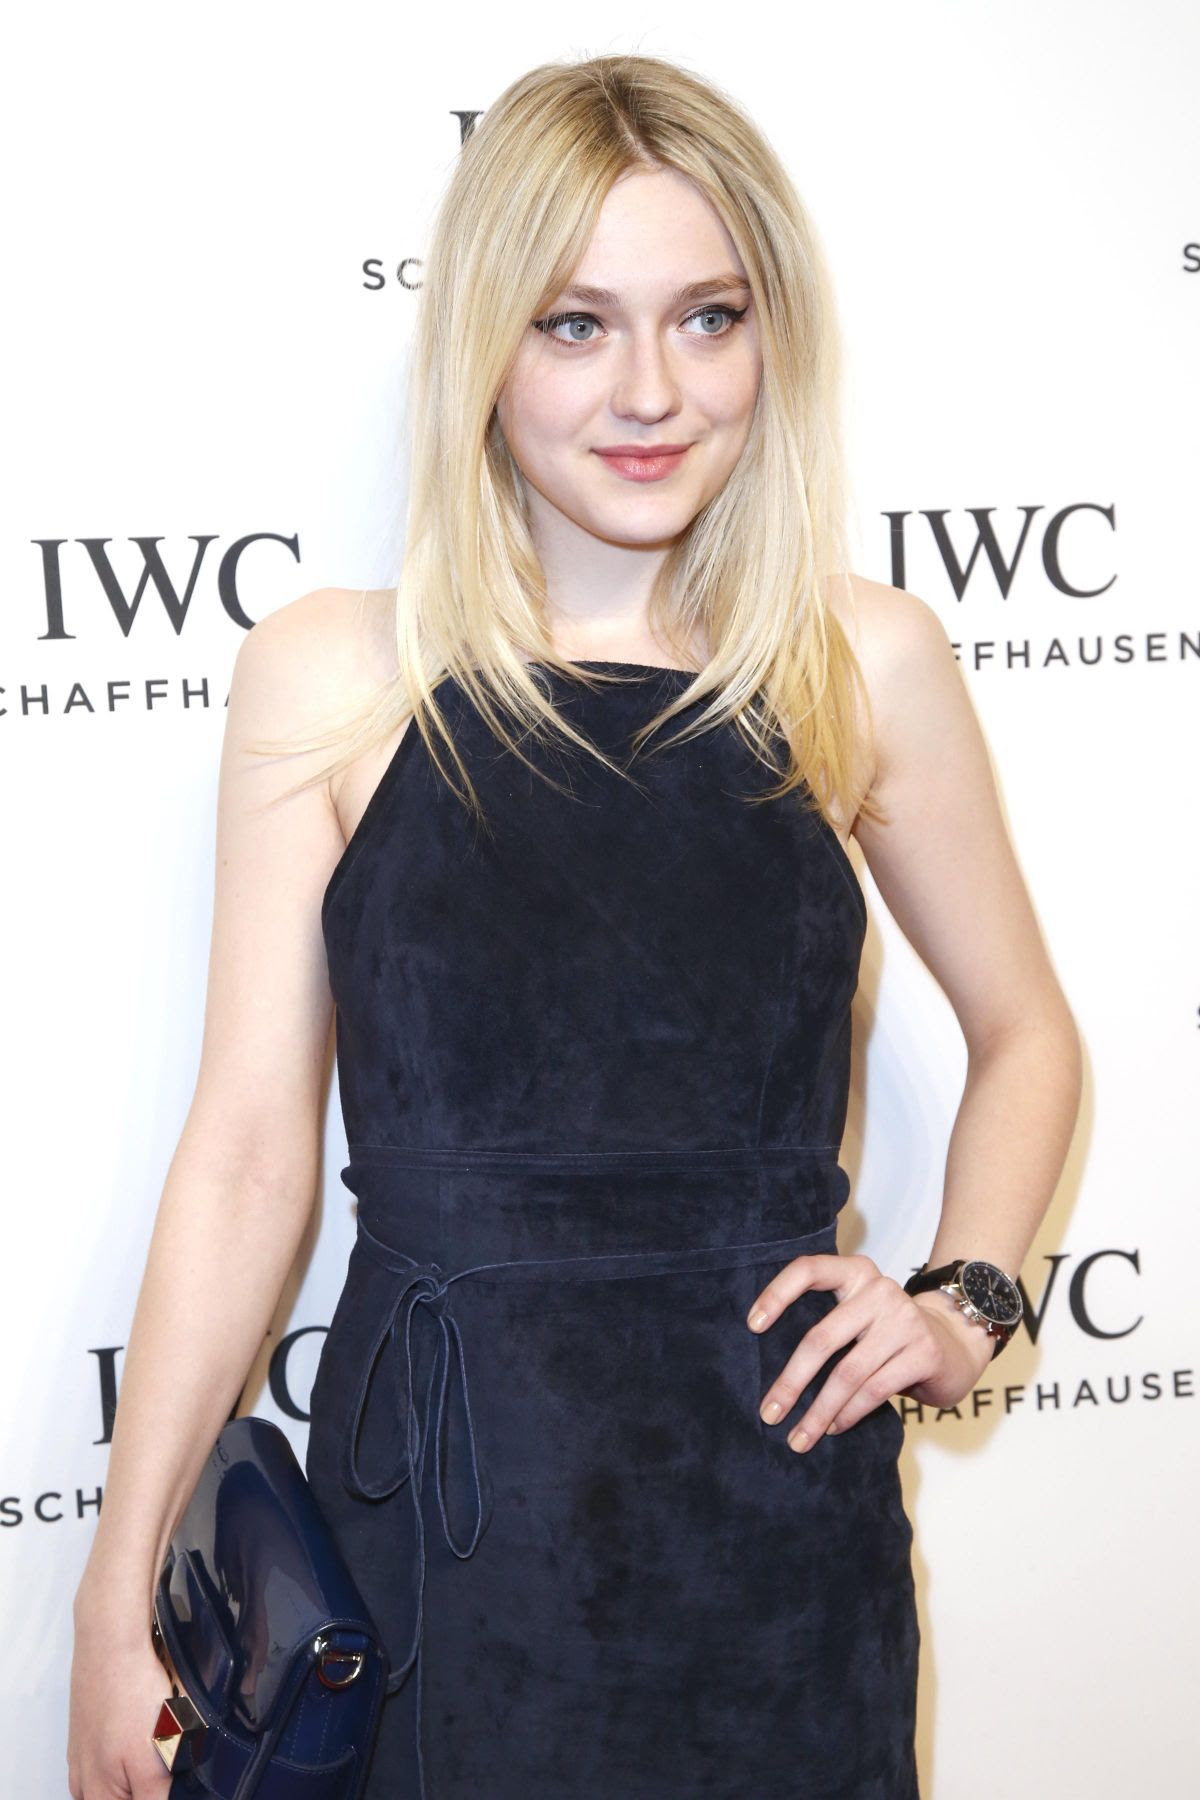 DAKOTA FANNING at IWC Schaffhausen For the Love of Cinema Gala in New York